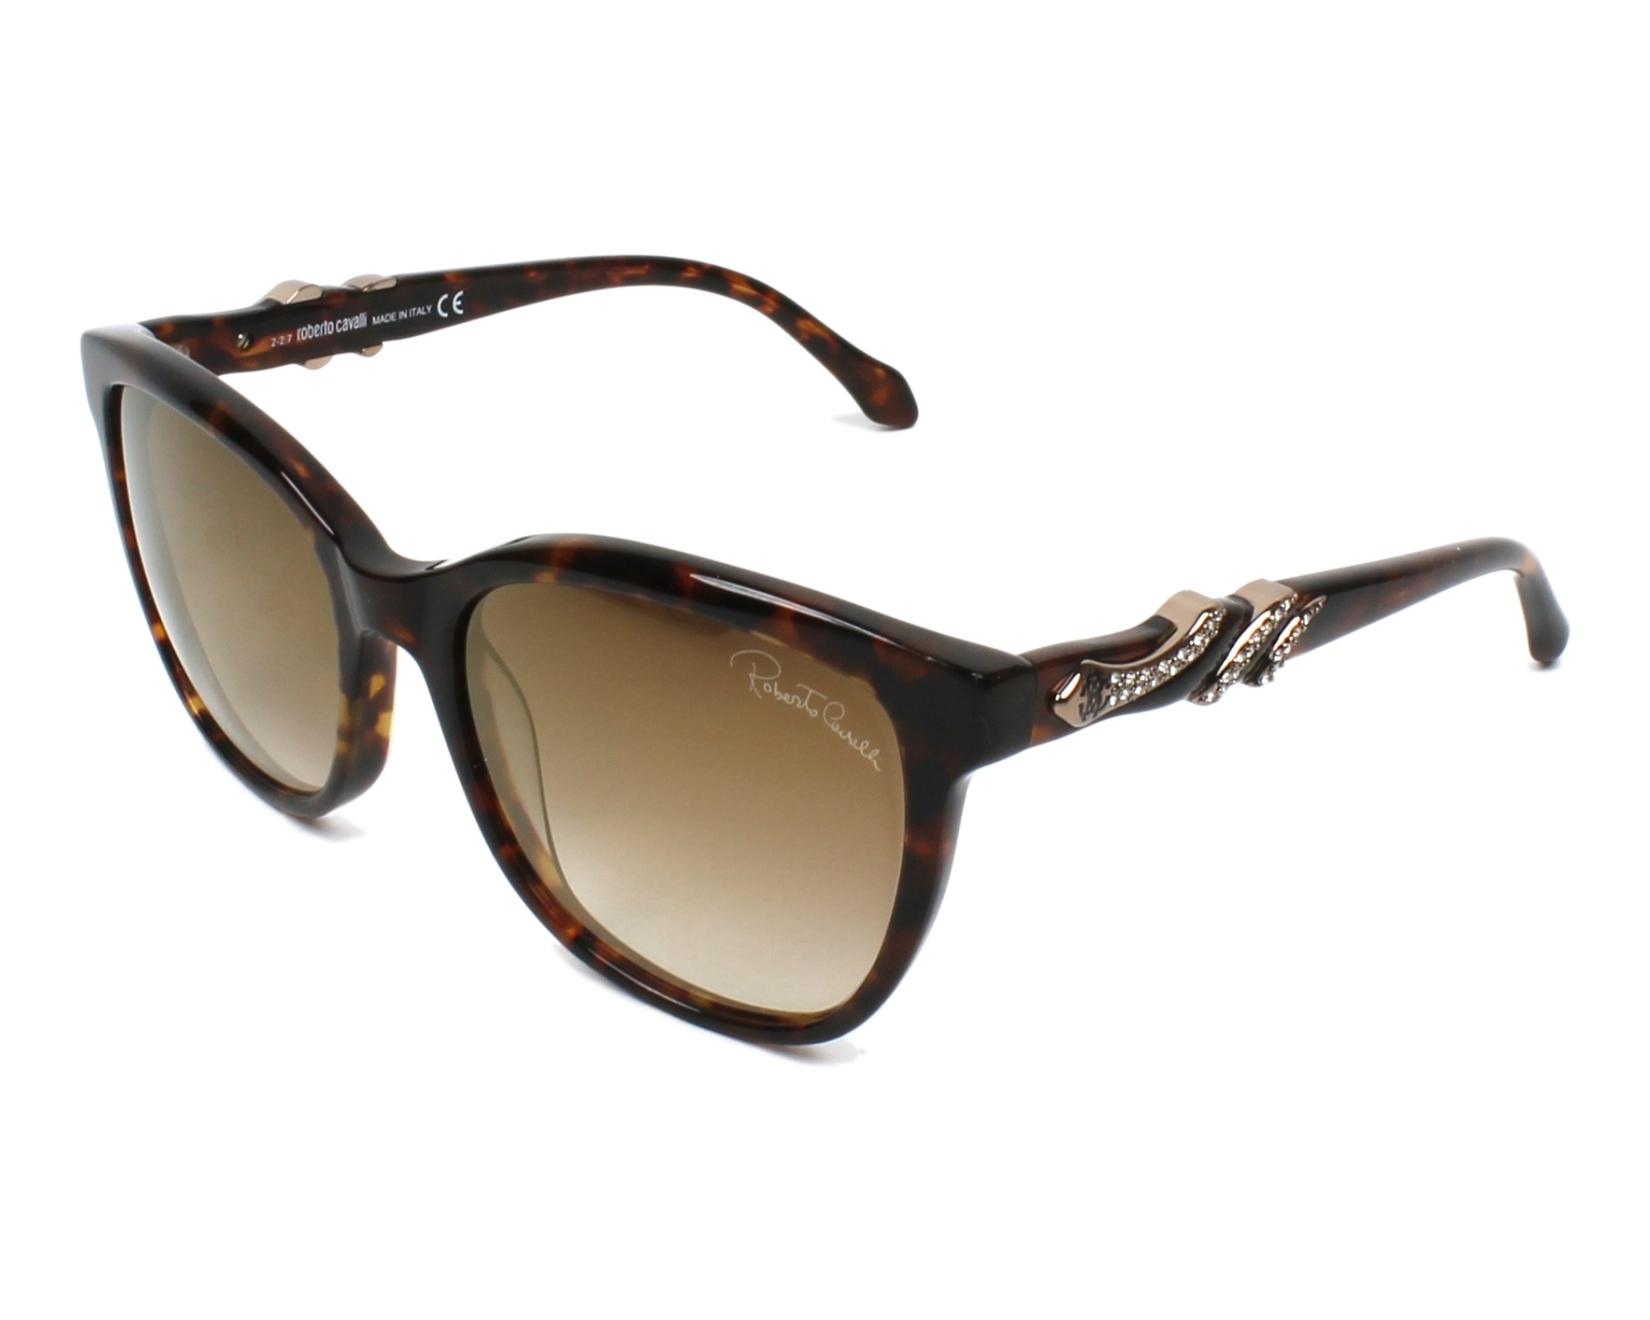 Roberto Cavalli Sunglasses Havana with Brown Lenses RC ...